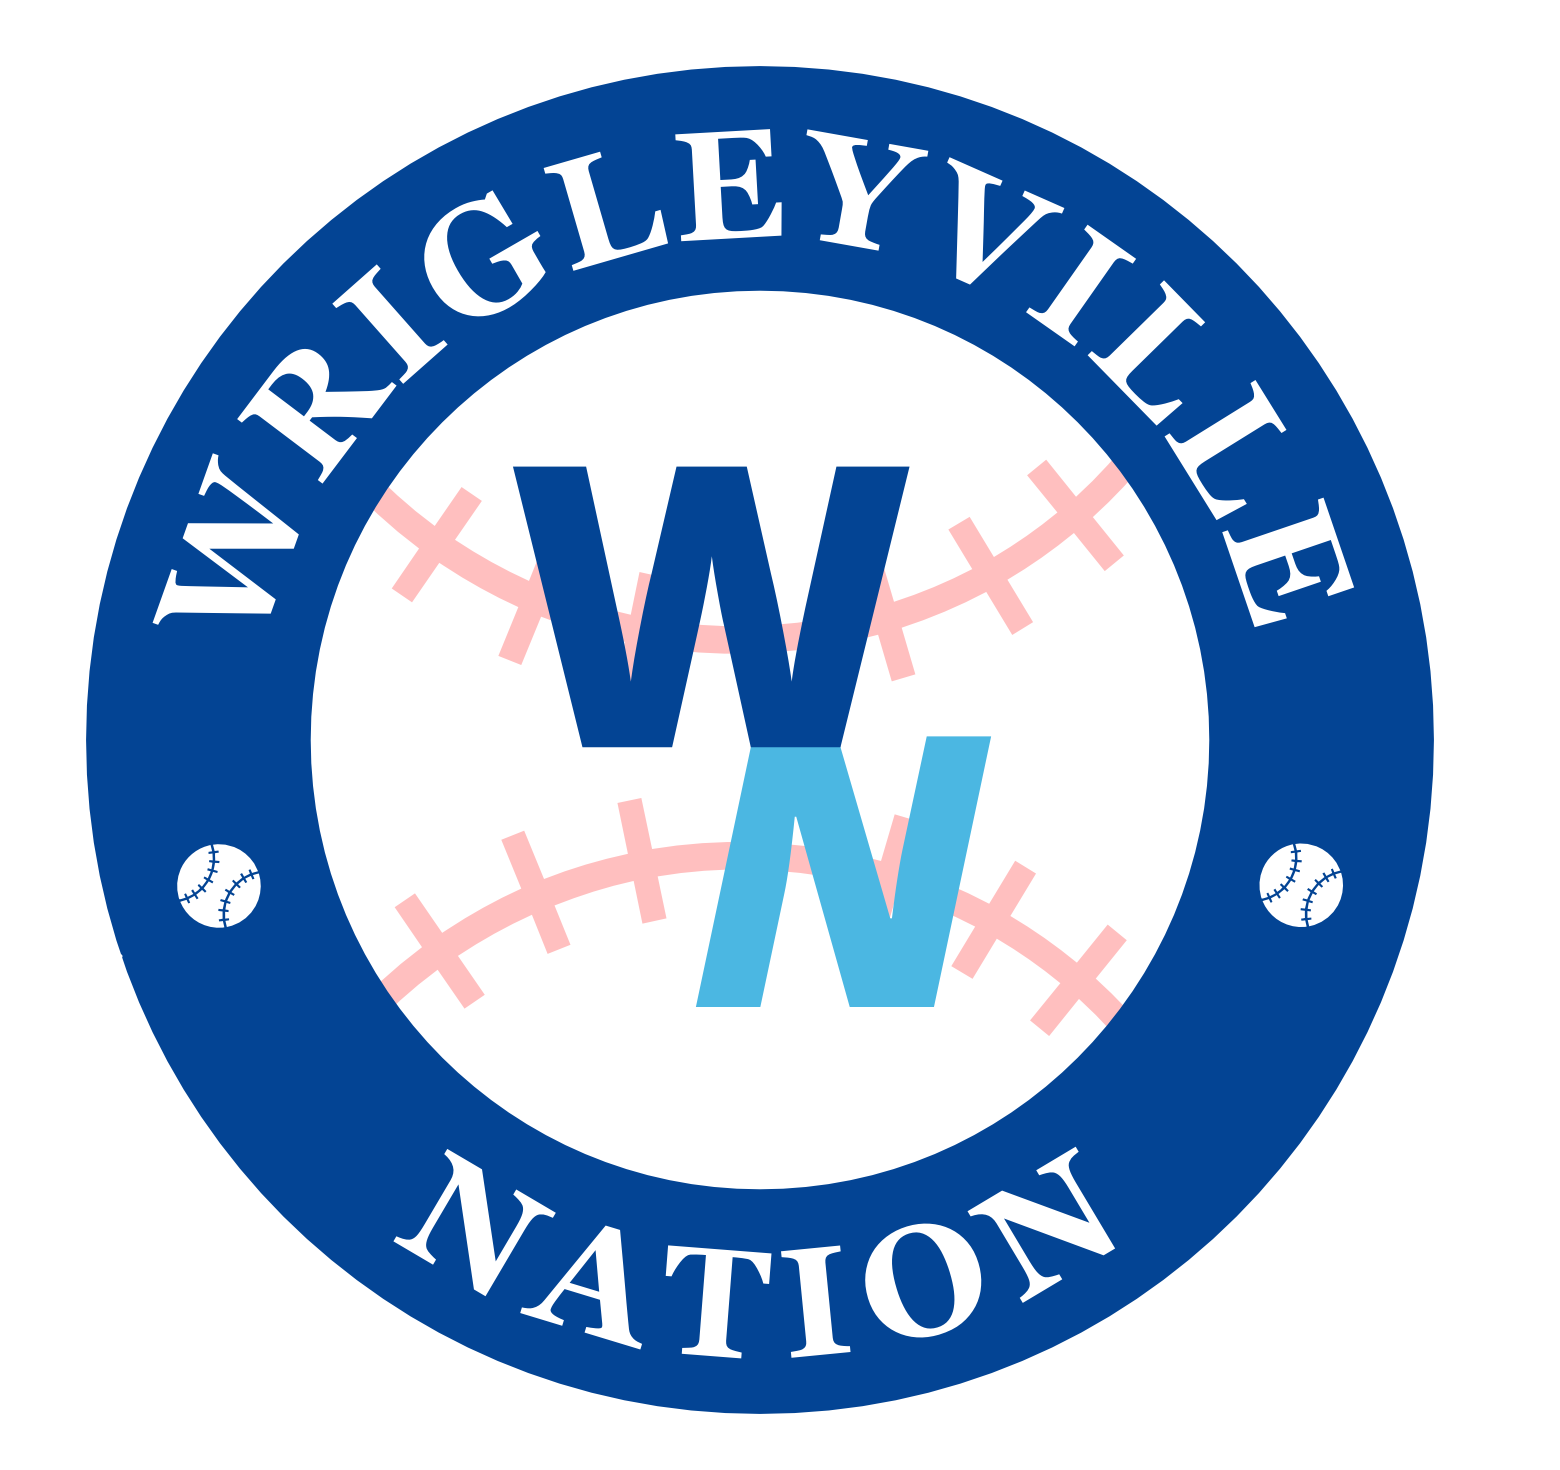 Wrigleyville Nation Ep 233 - Guest: Matthew Trueblood, Mills No Hitter, Kimbrel, Cubs Upcoming Schedule show art